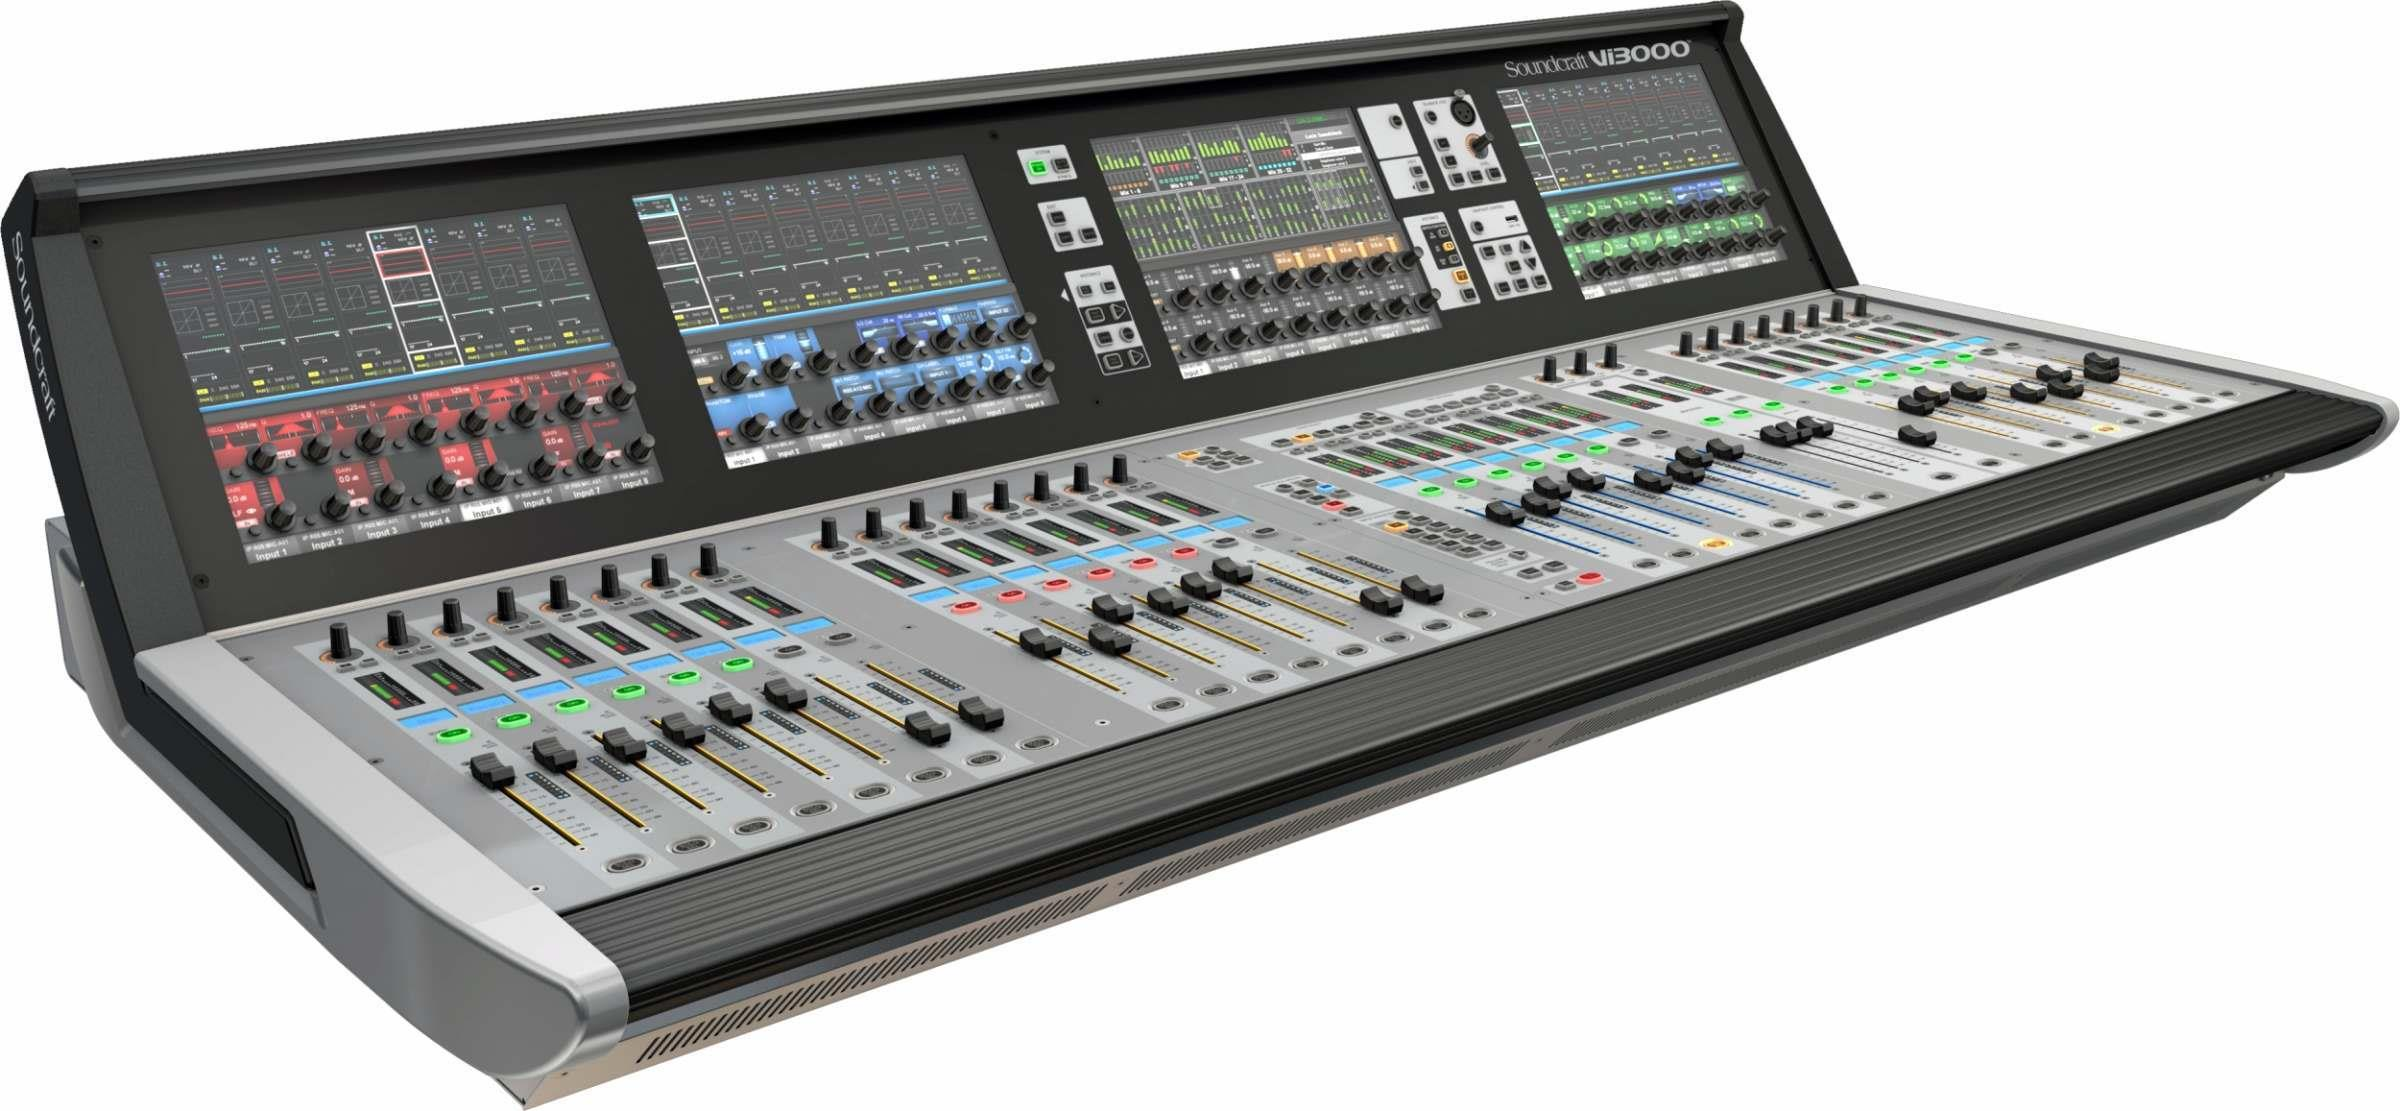 Soundcraft VI3000 Digitalpult